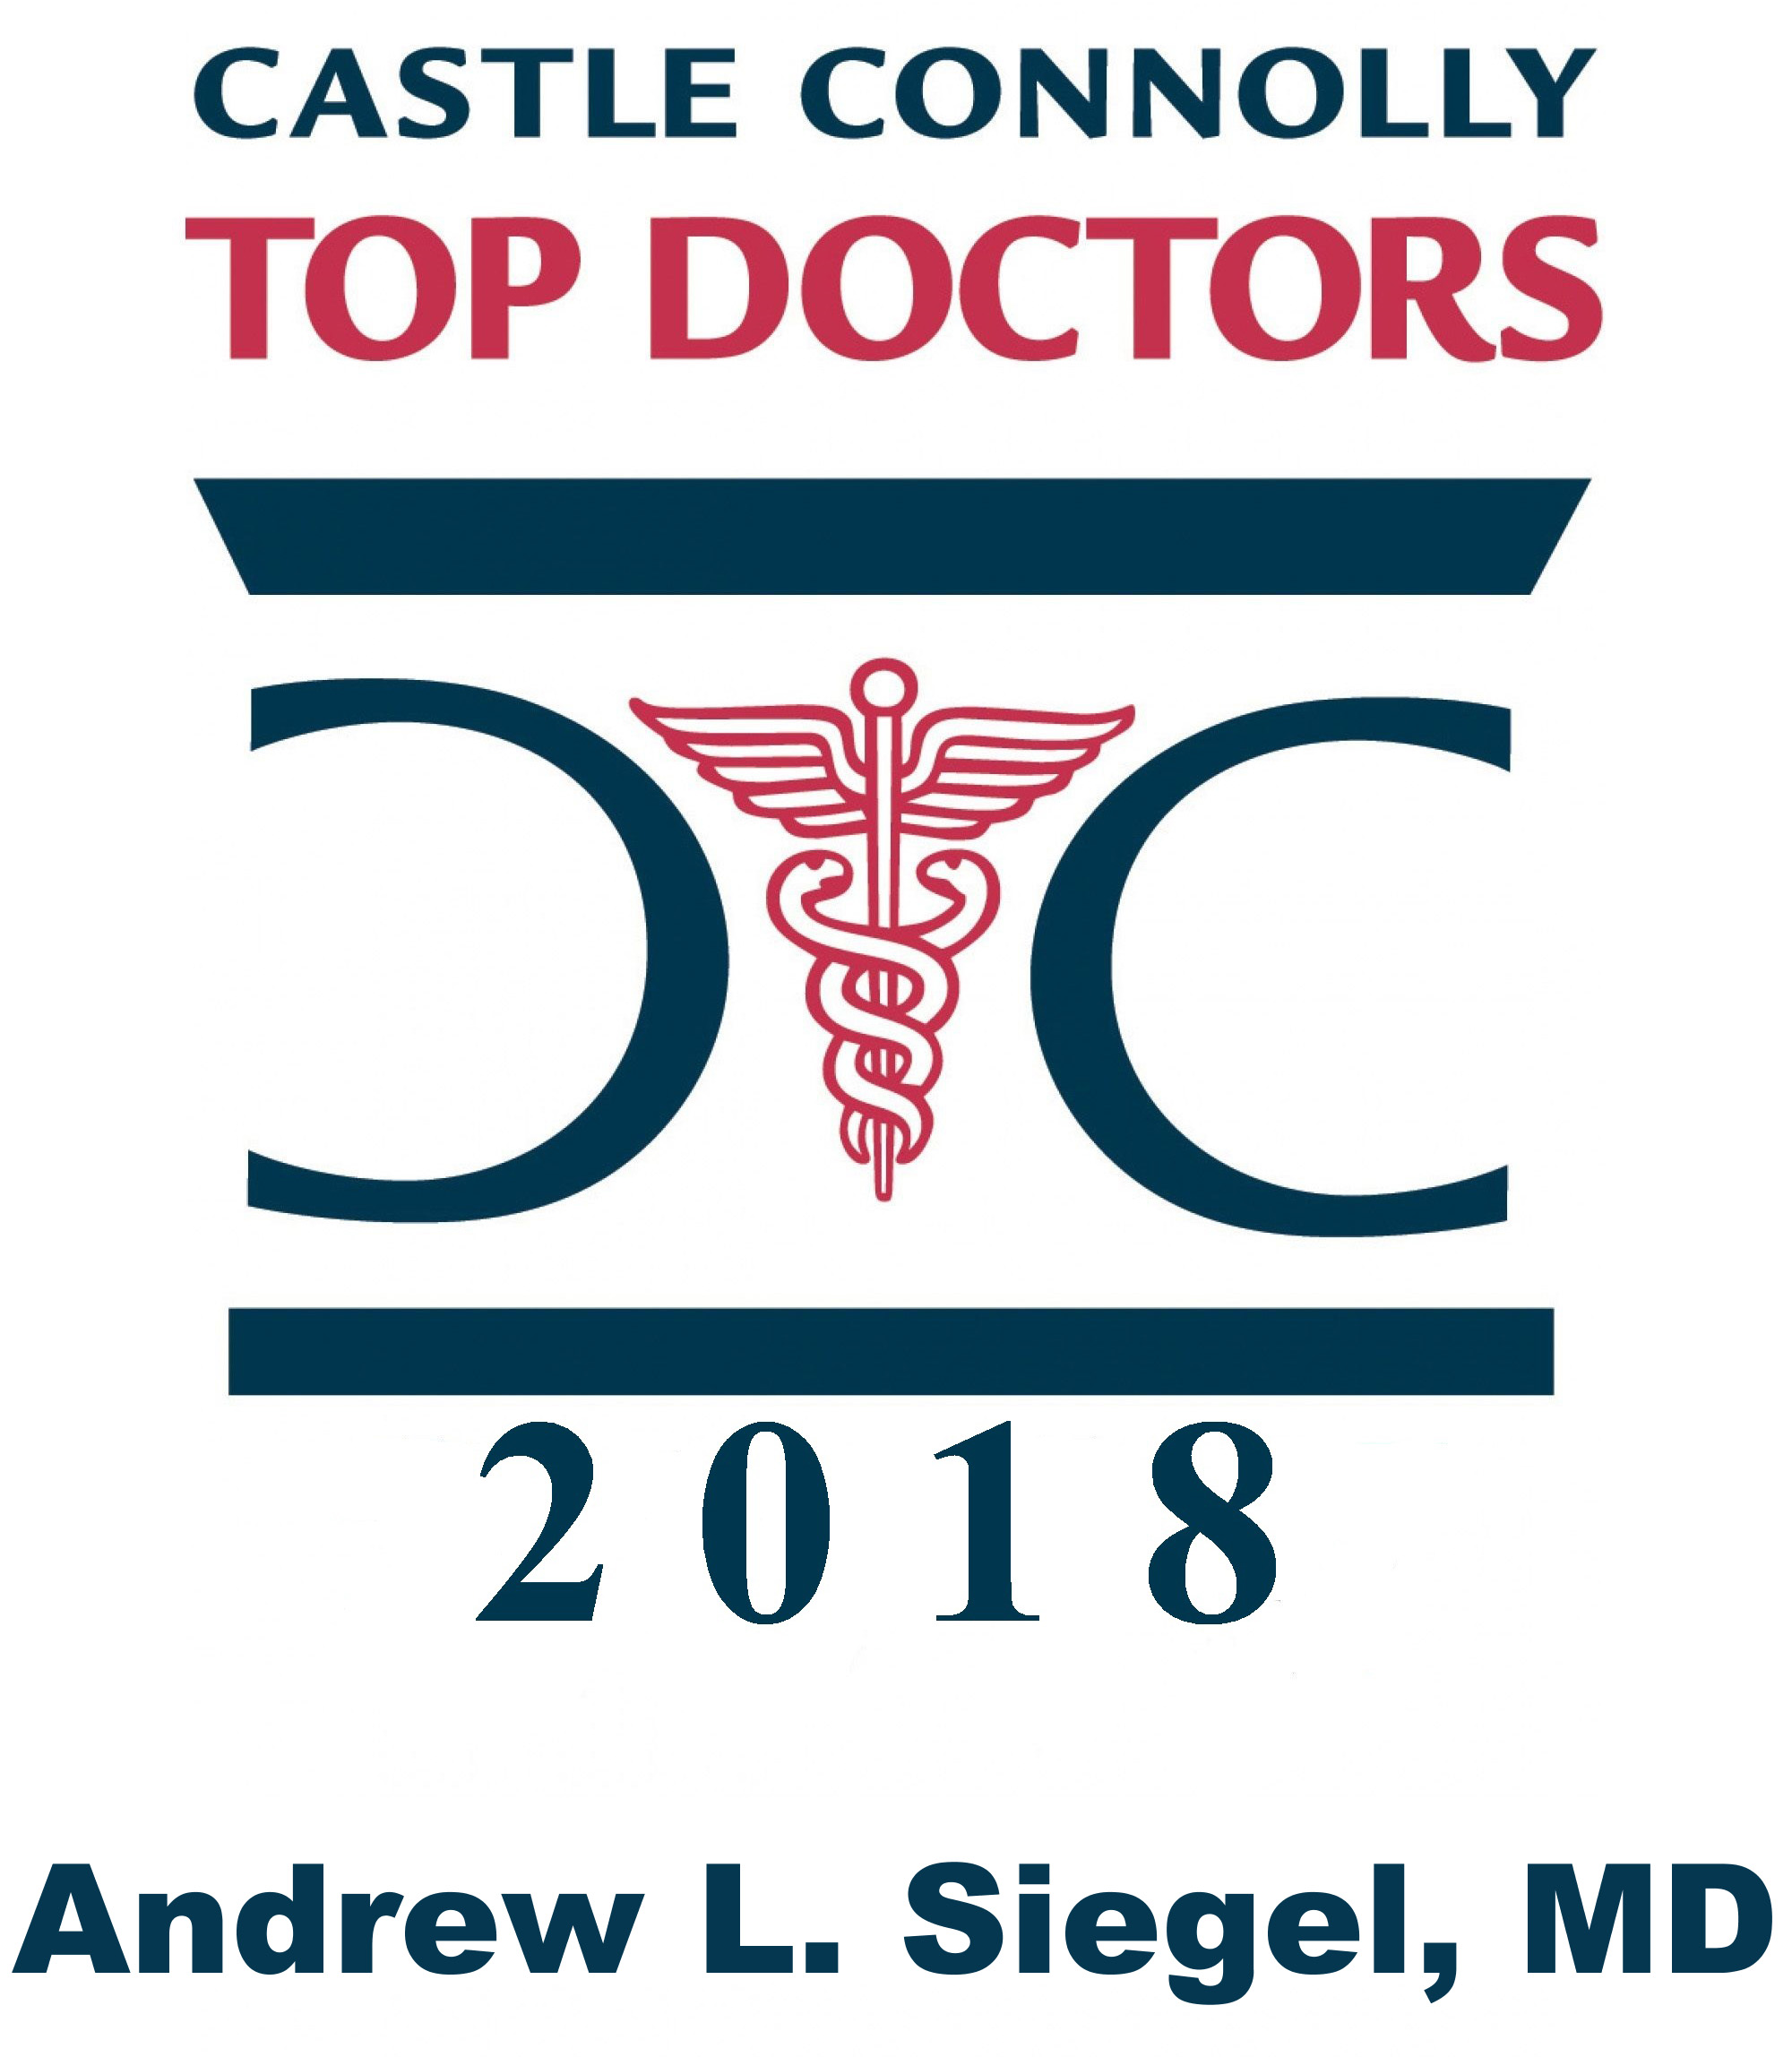 Dr. Andrew Siegel - 2018 Top Doctors Logo (large)